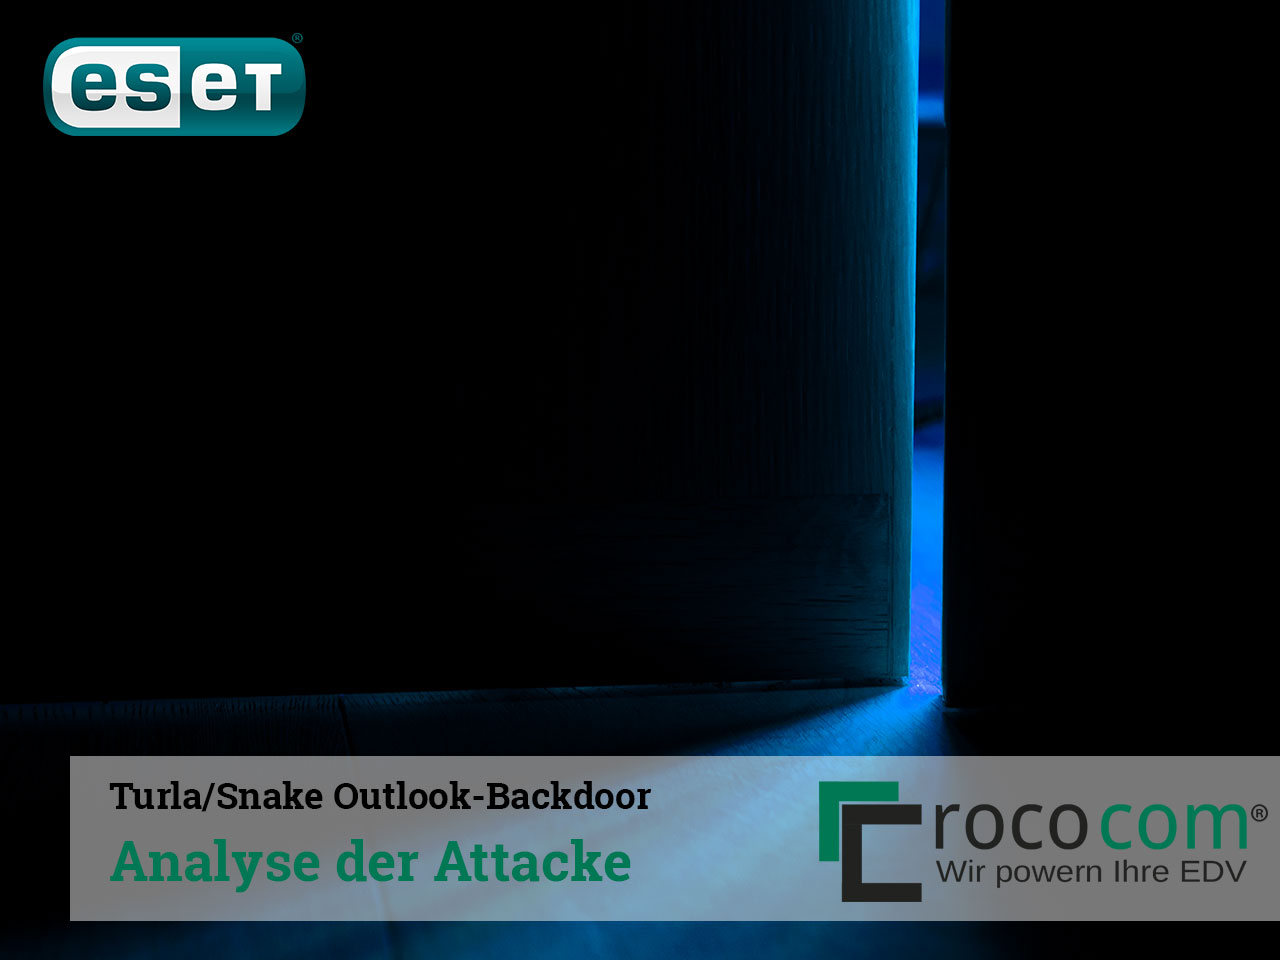 Turla/Snake: Outlook Backdoor – Analyse der Attacke